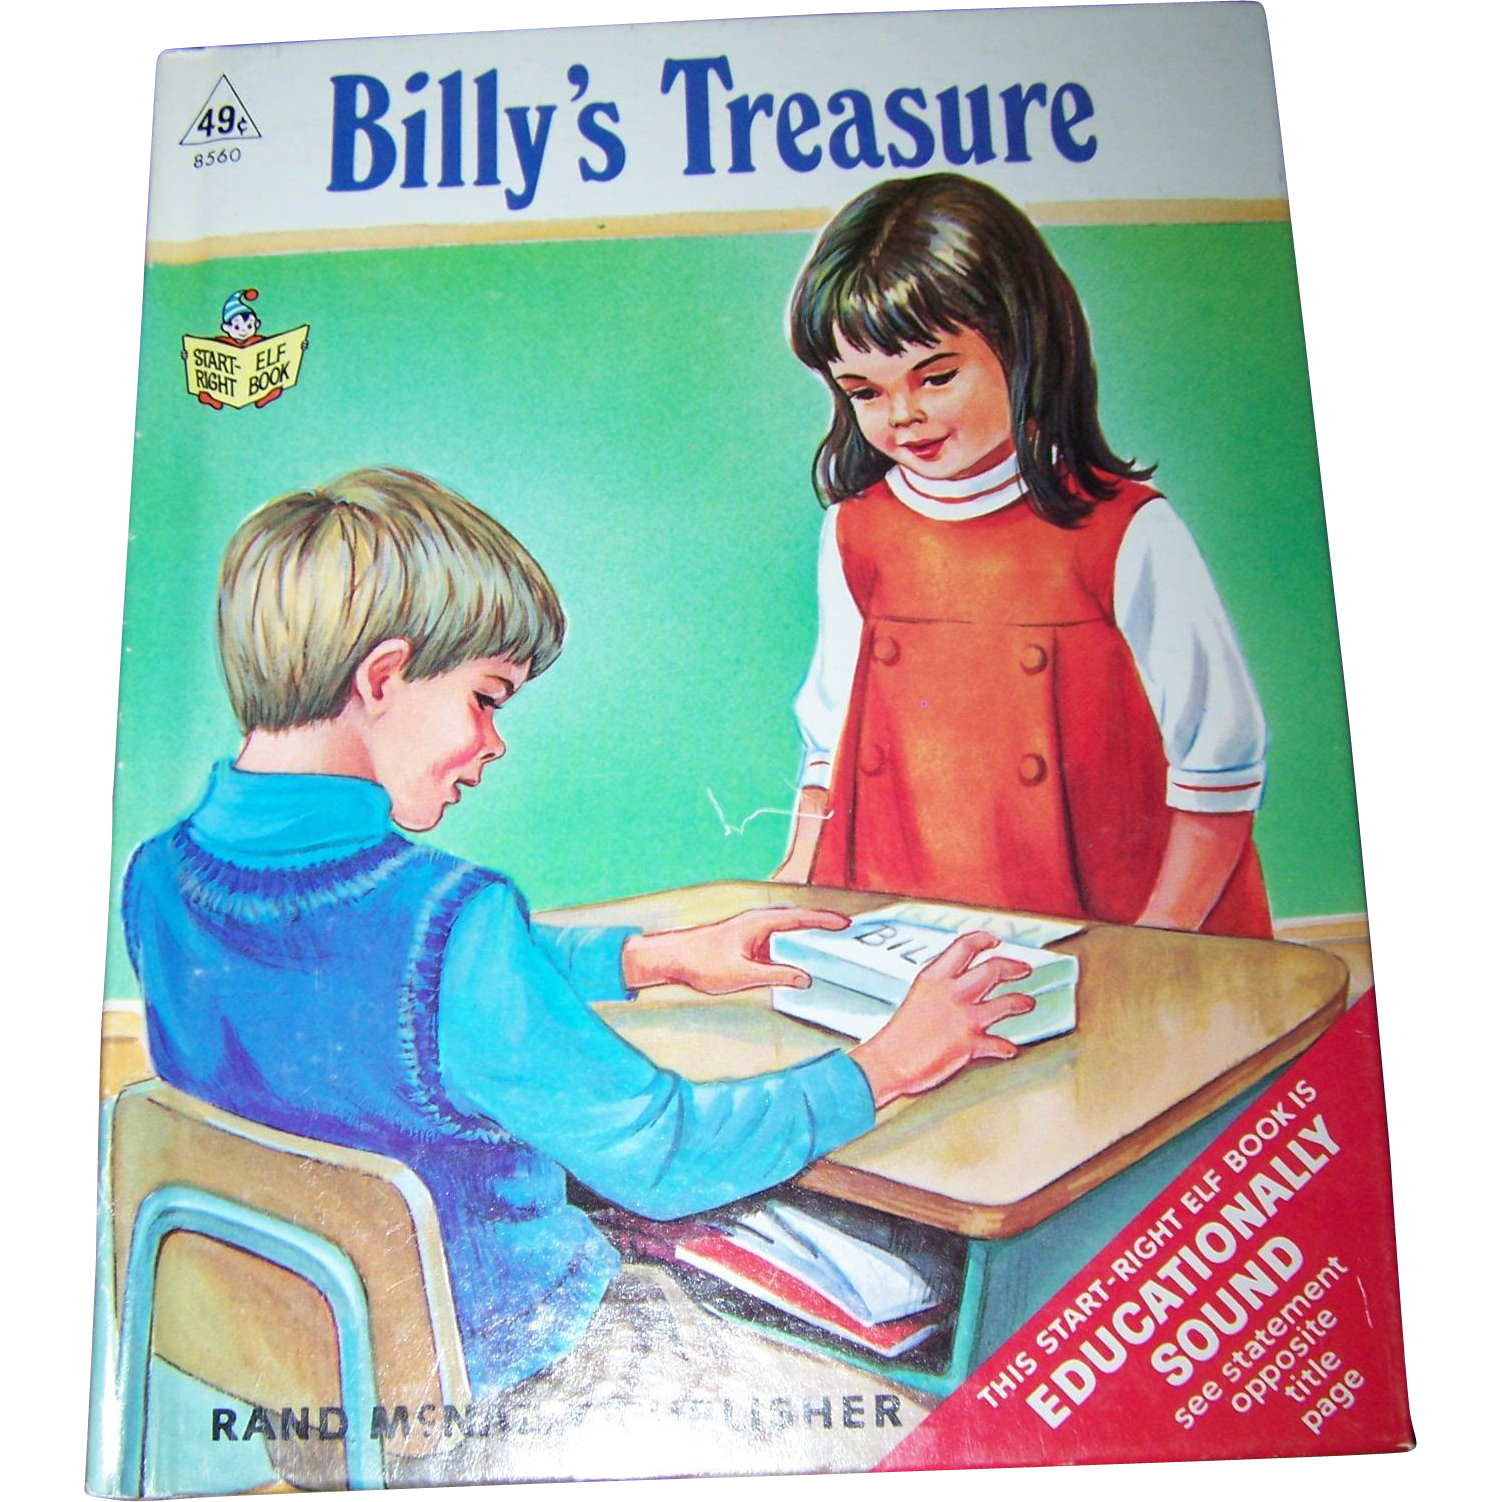 A Sweet Vintage Childrfen's Book Billy's Treasures  by Dorthea J. Snow  Start Right Elf Book